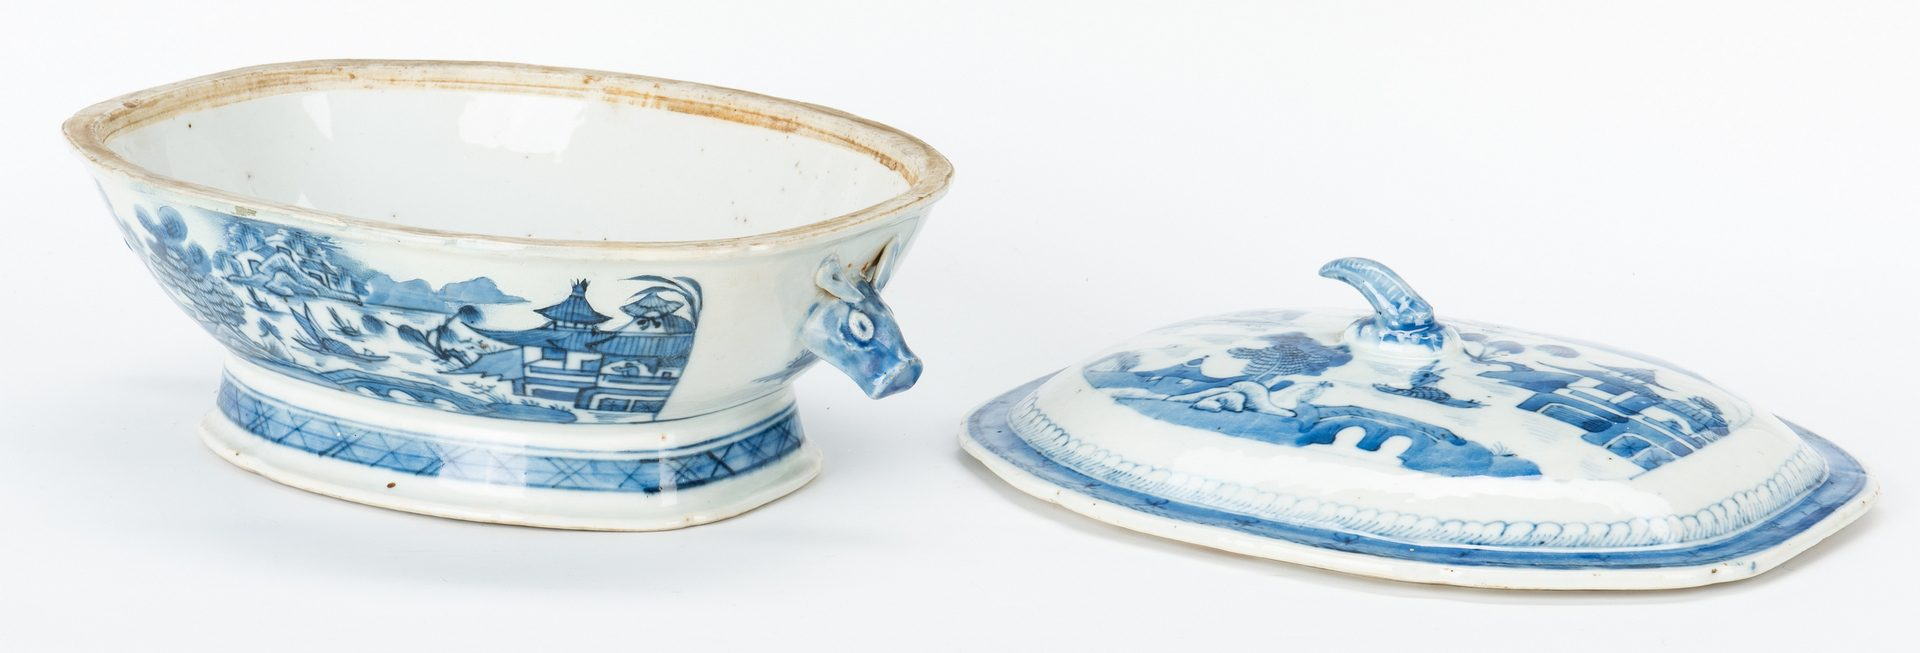 Lot 482: Large Group Chinese Blue & White Export Porcelain, 19 items